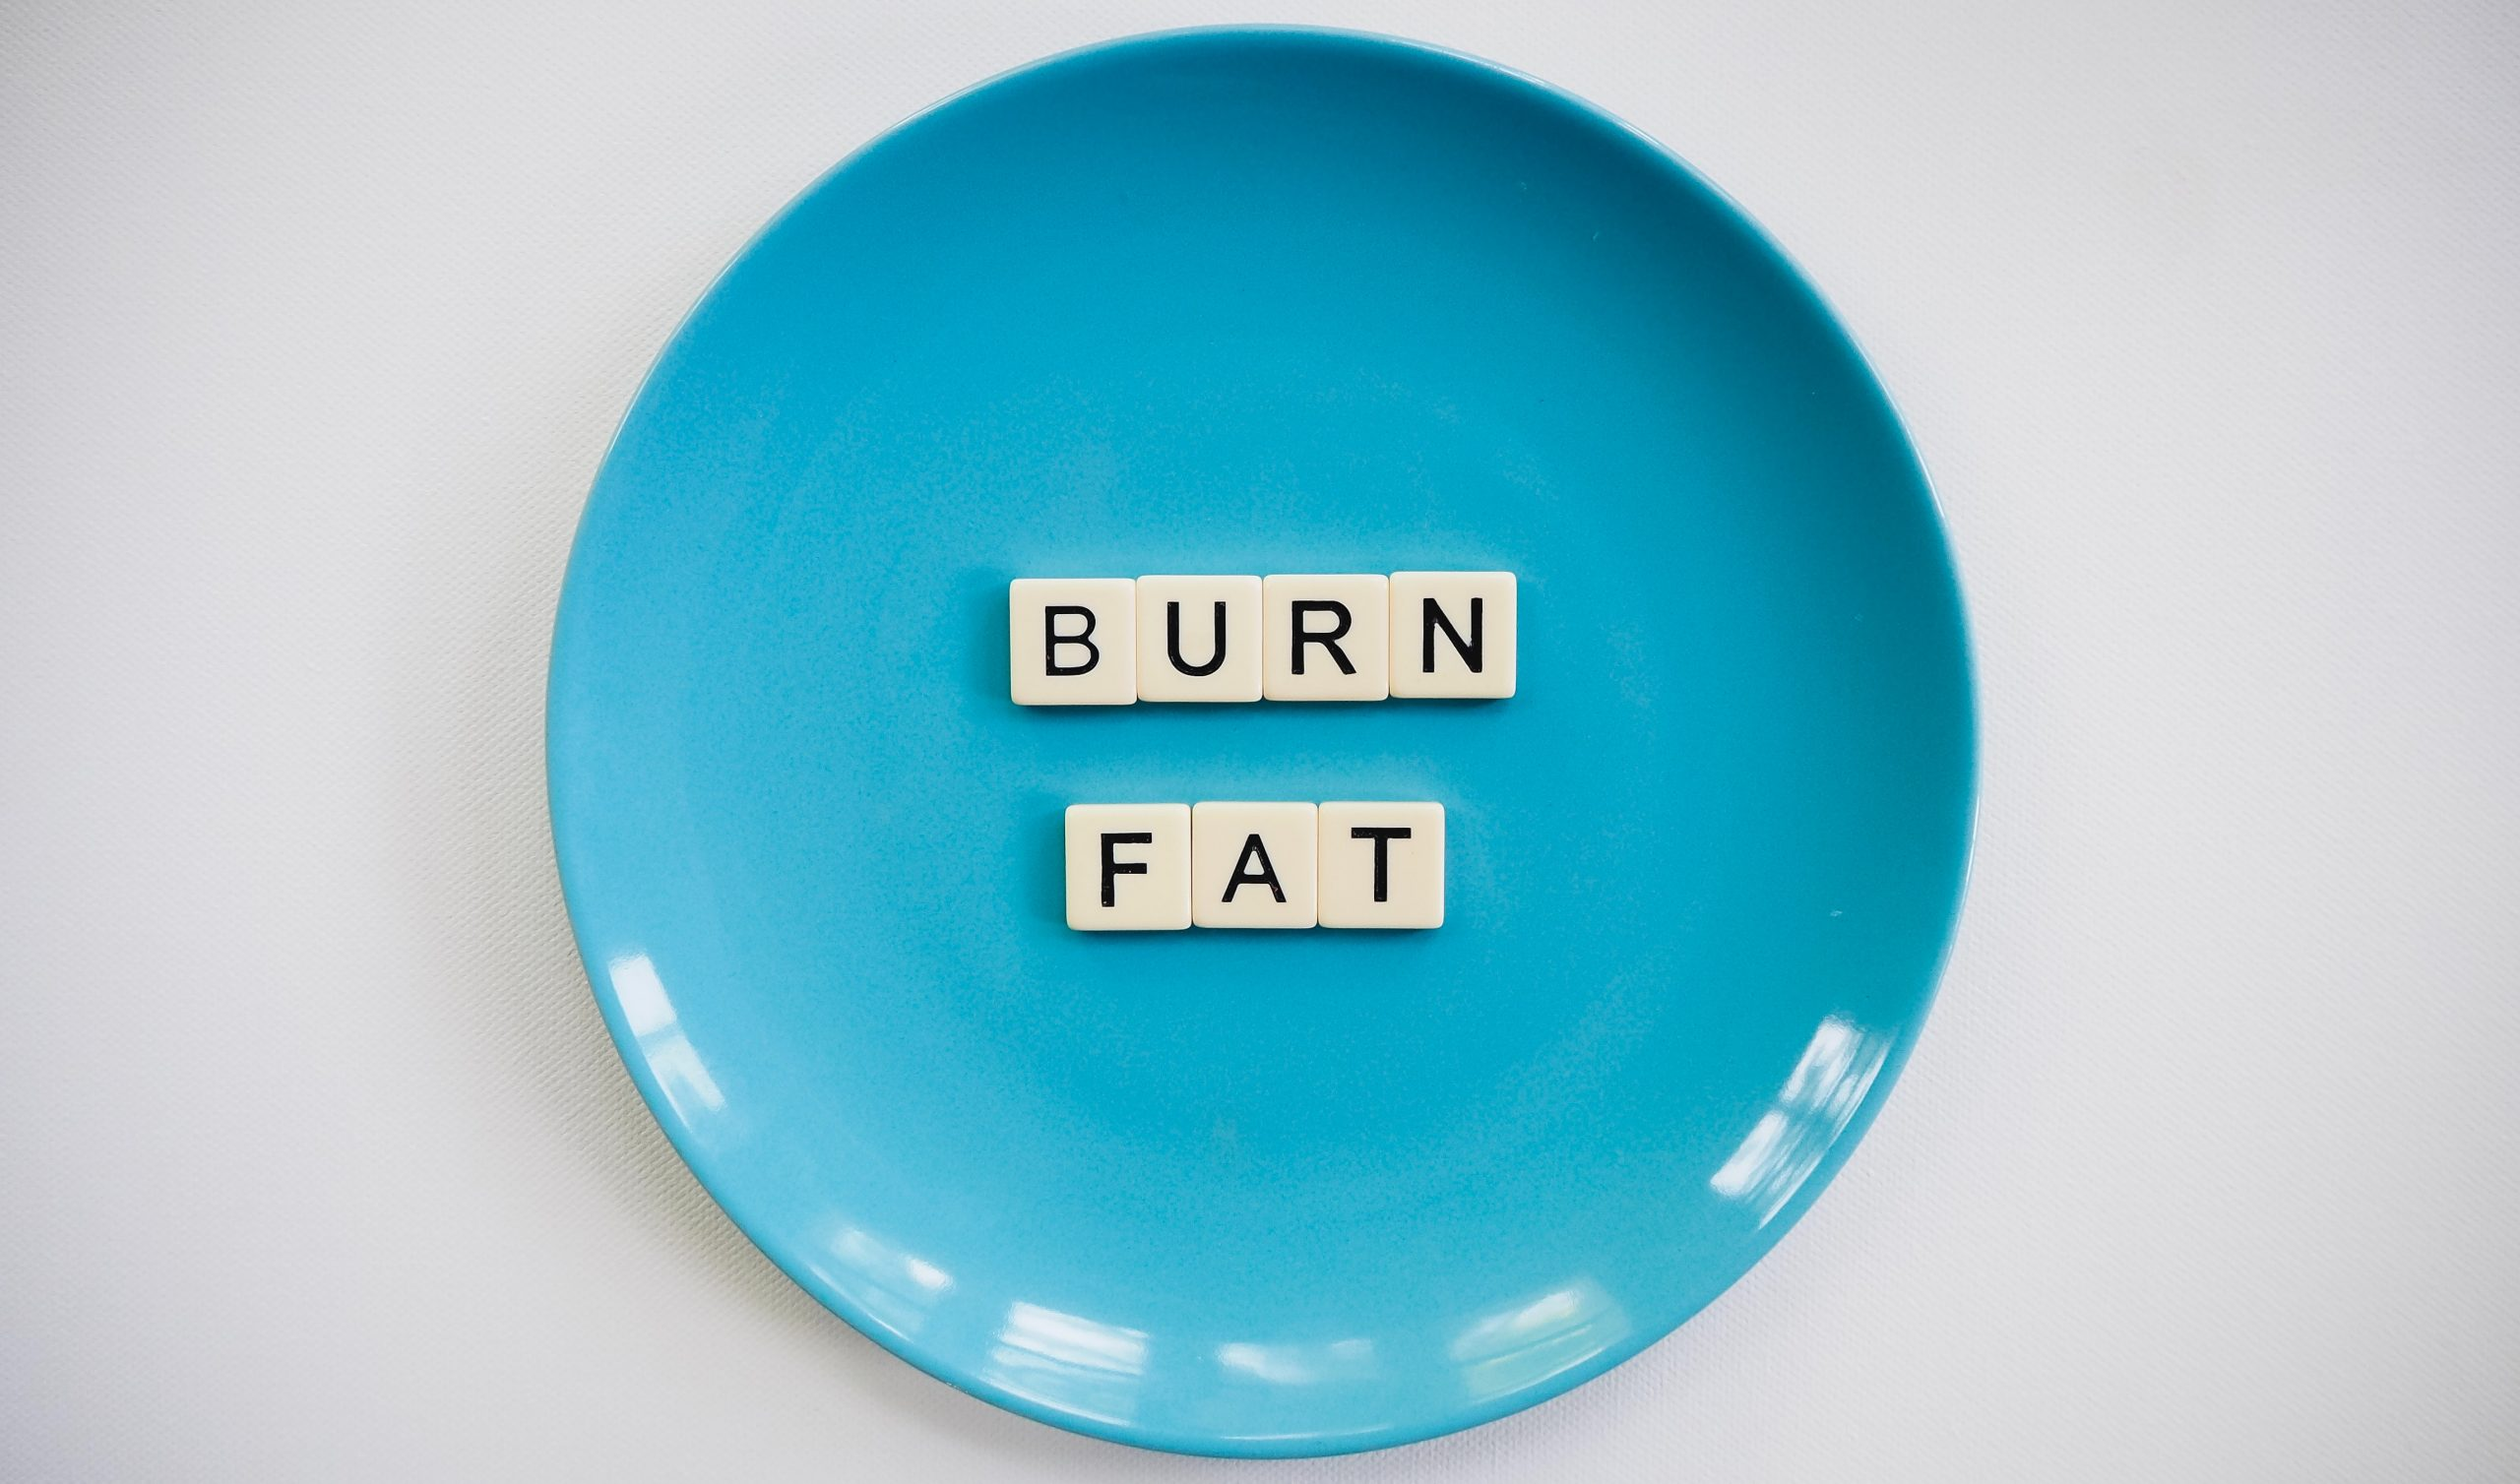 High fat diets store more body fat